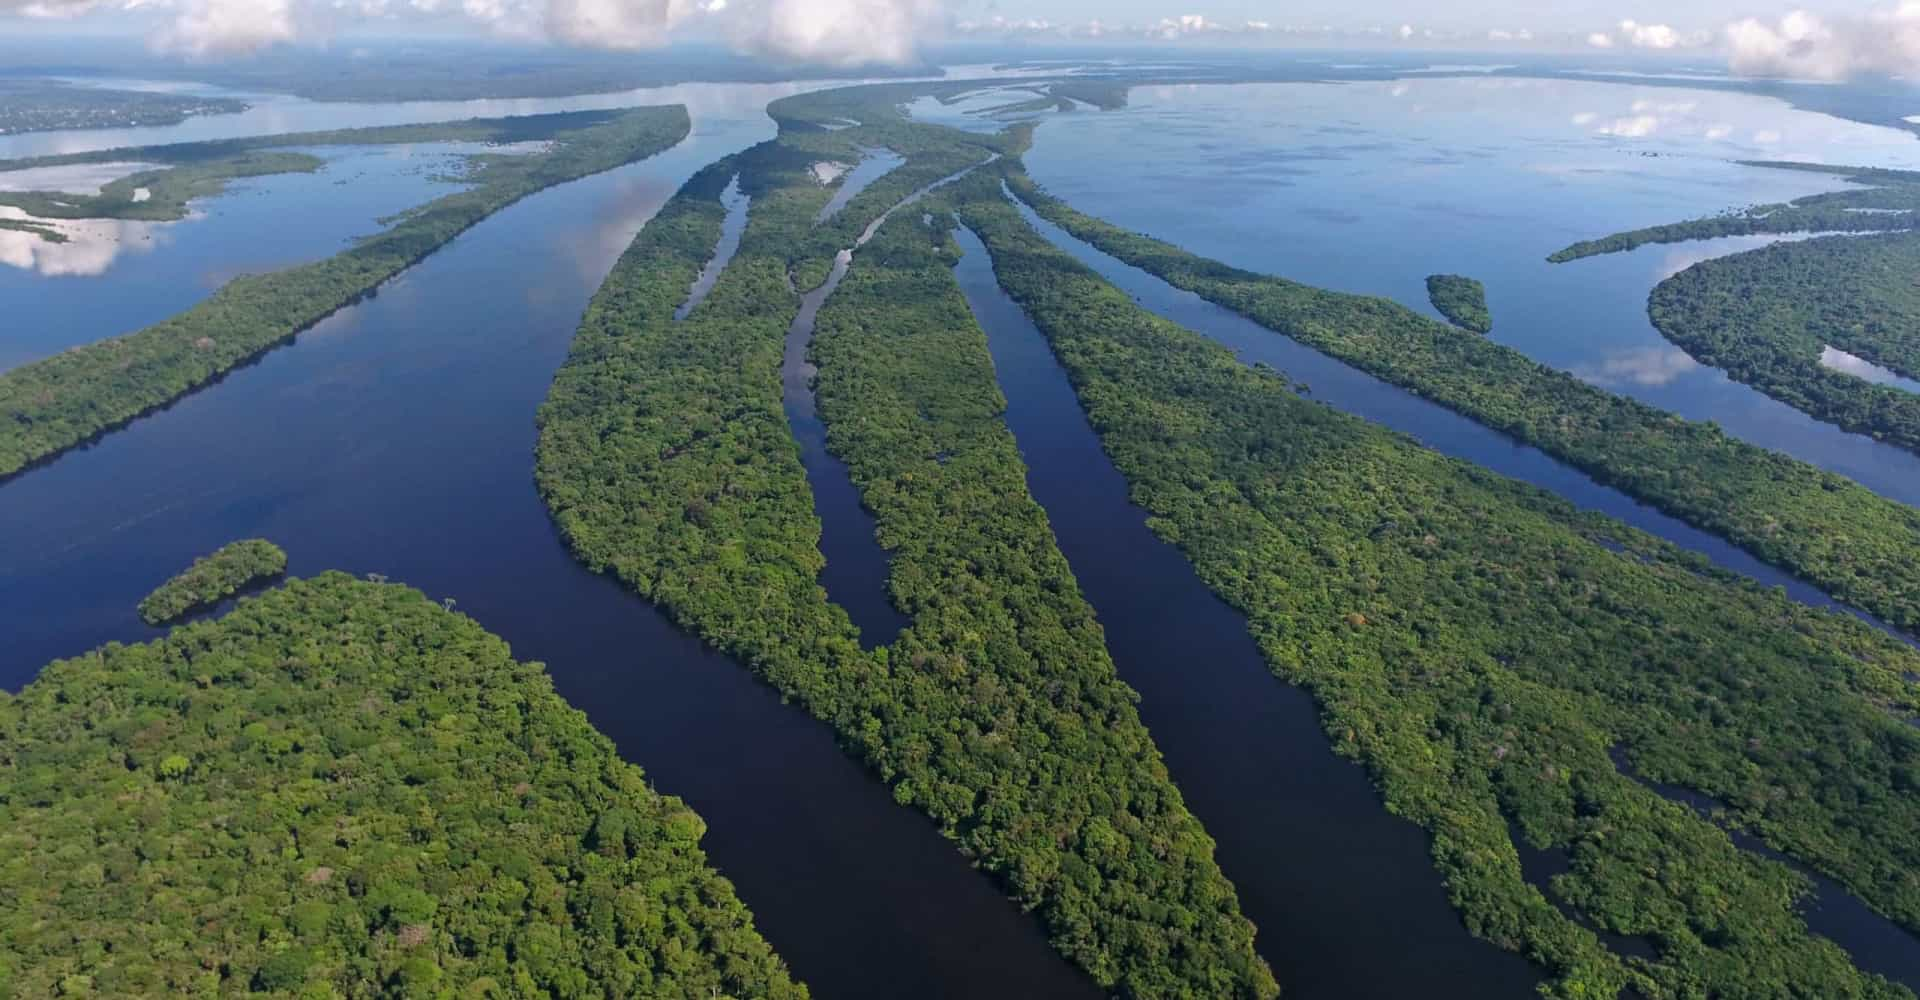 Amazônia: as lendas e mistérios da maior floresta do mundo